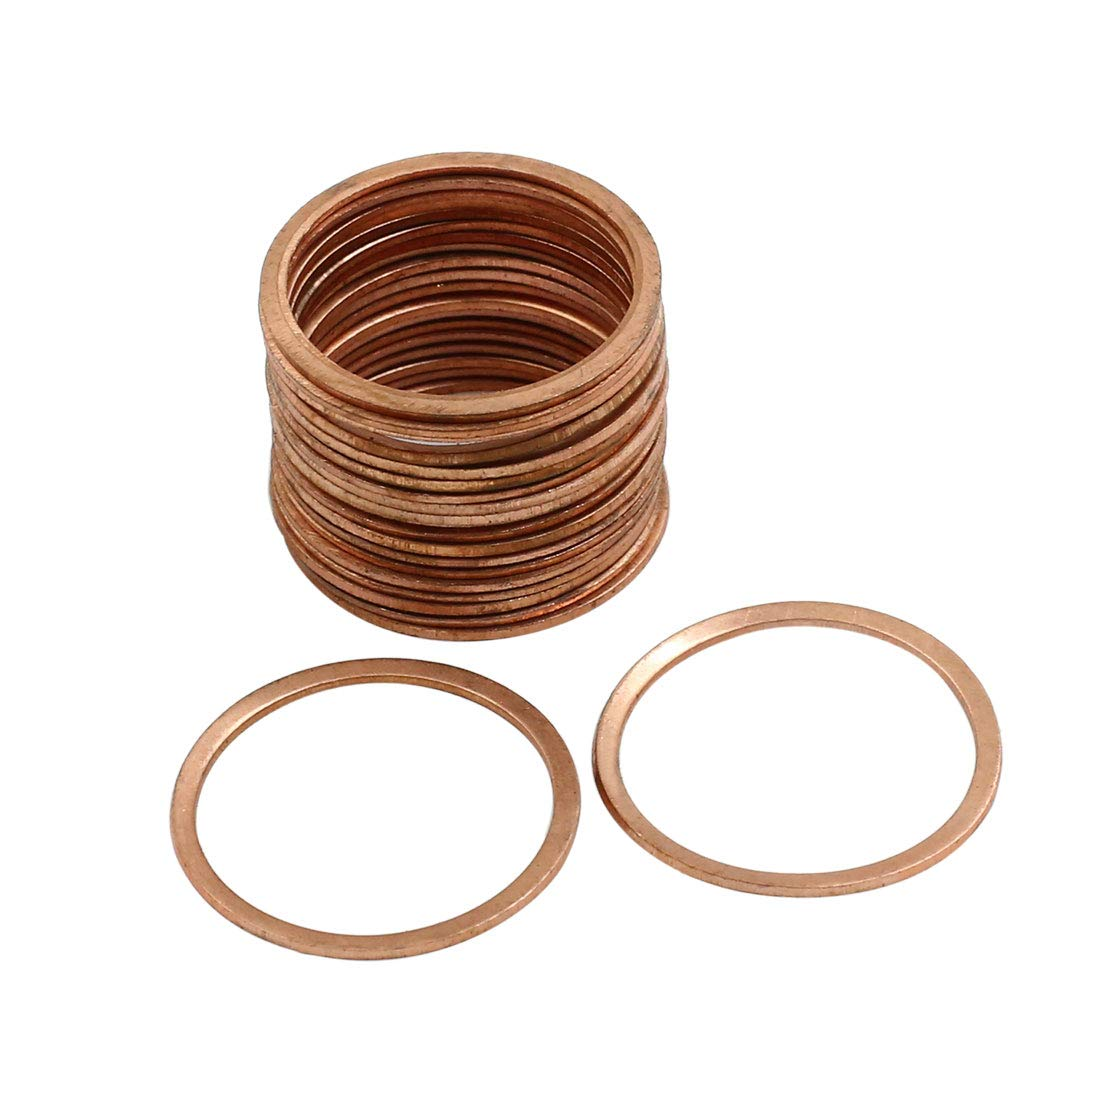 X AUTOHAUX 20pcs 26mm Inner Dia Copper Washers Flat Sealing Gaskets Ring for Car by X AUTOHAUX (Image #1)